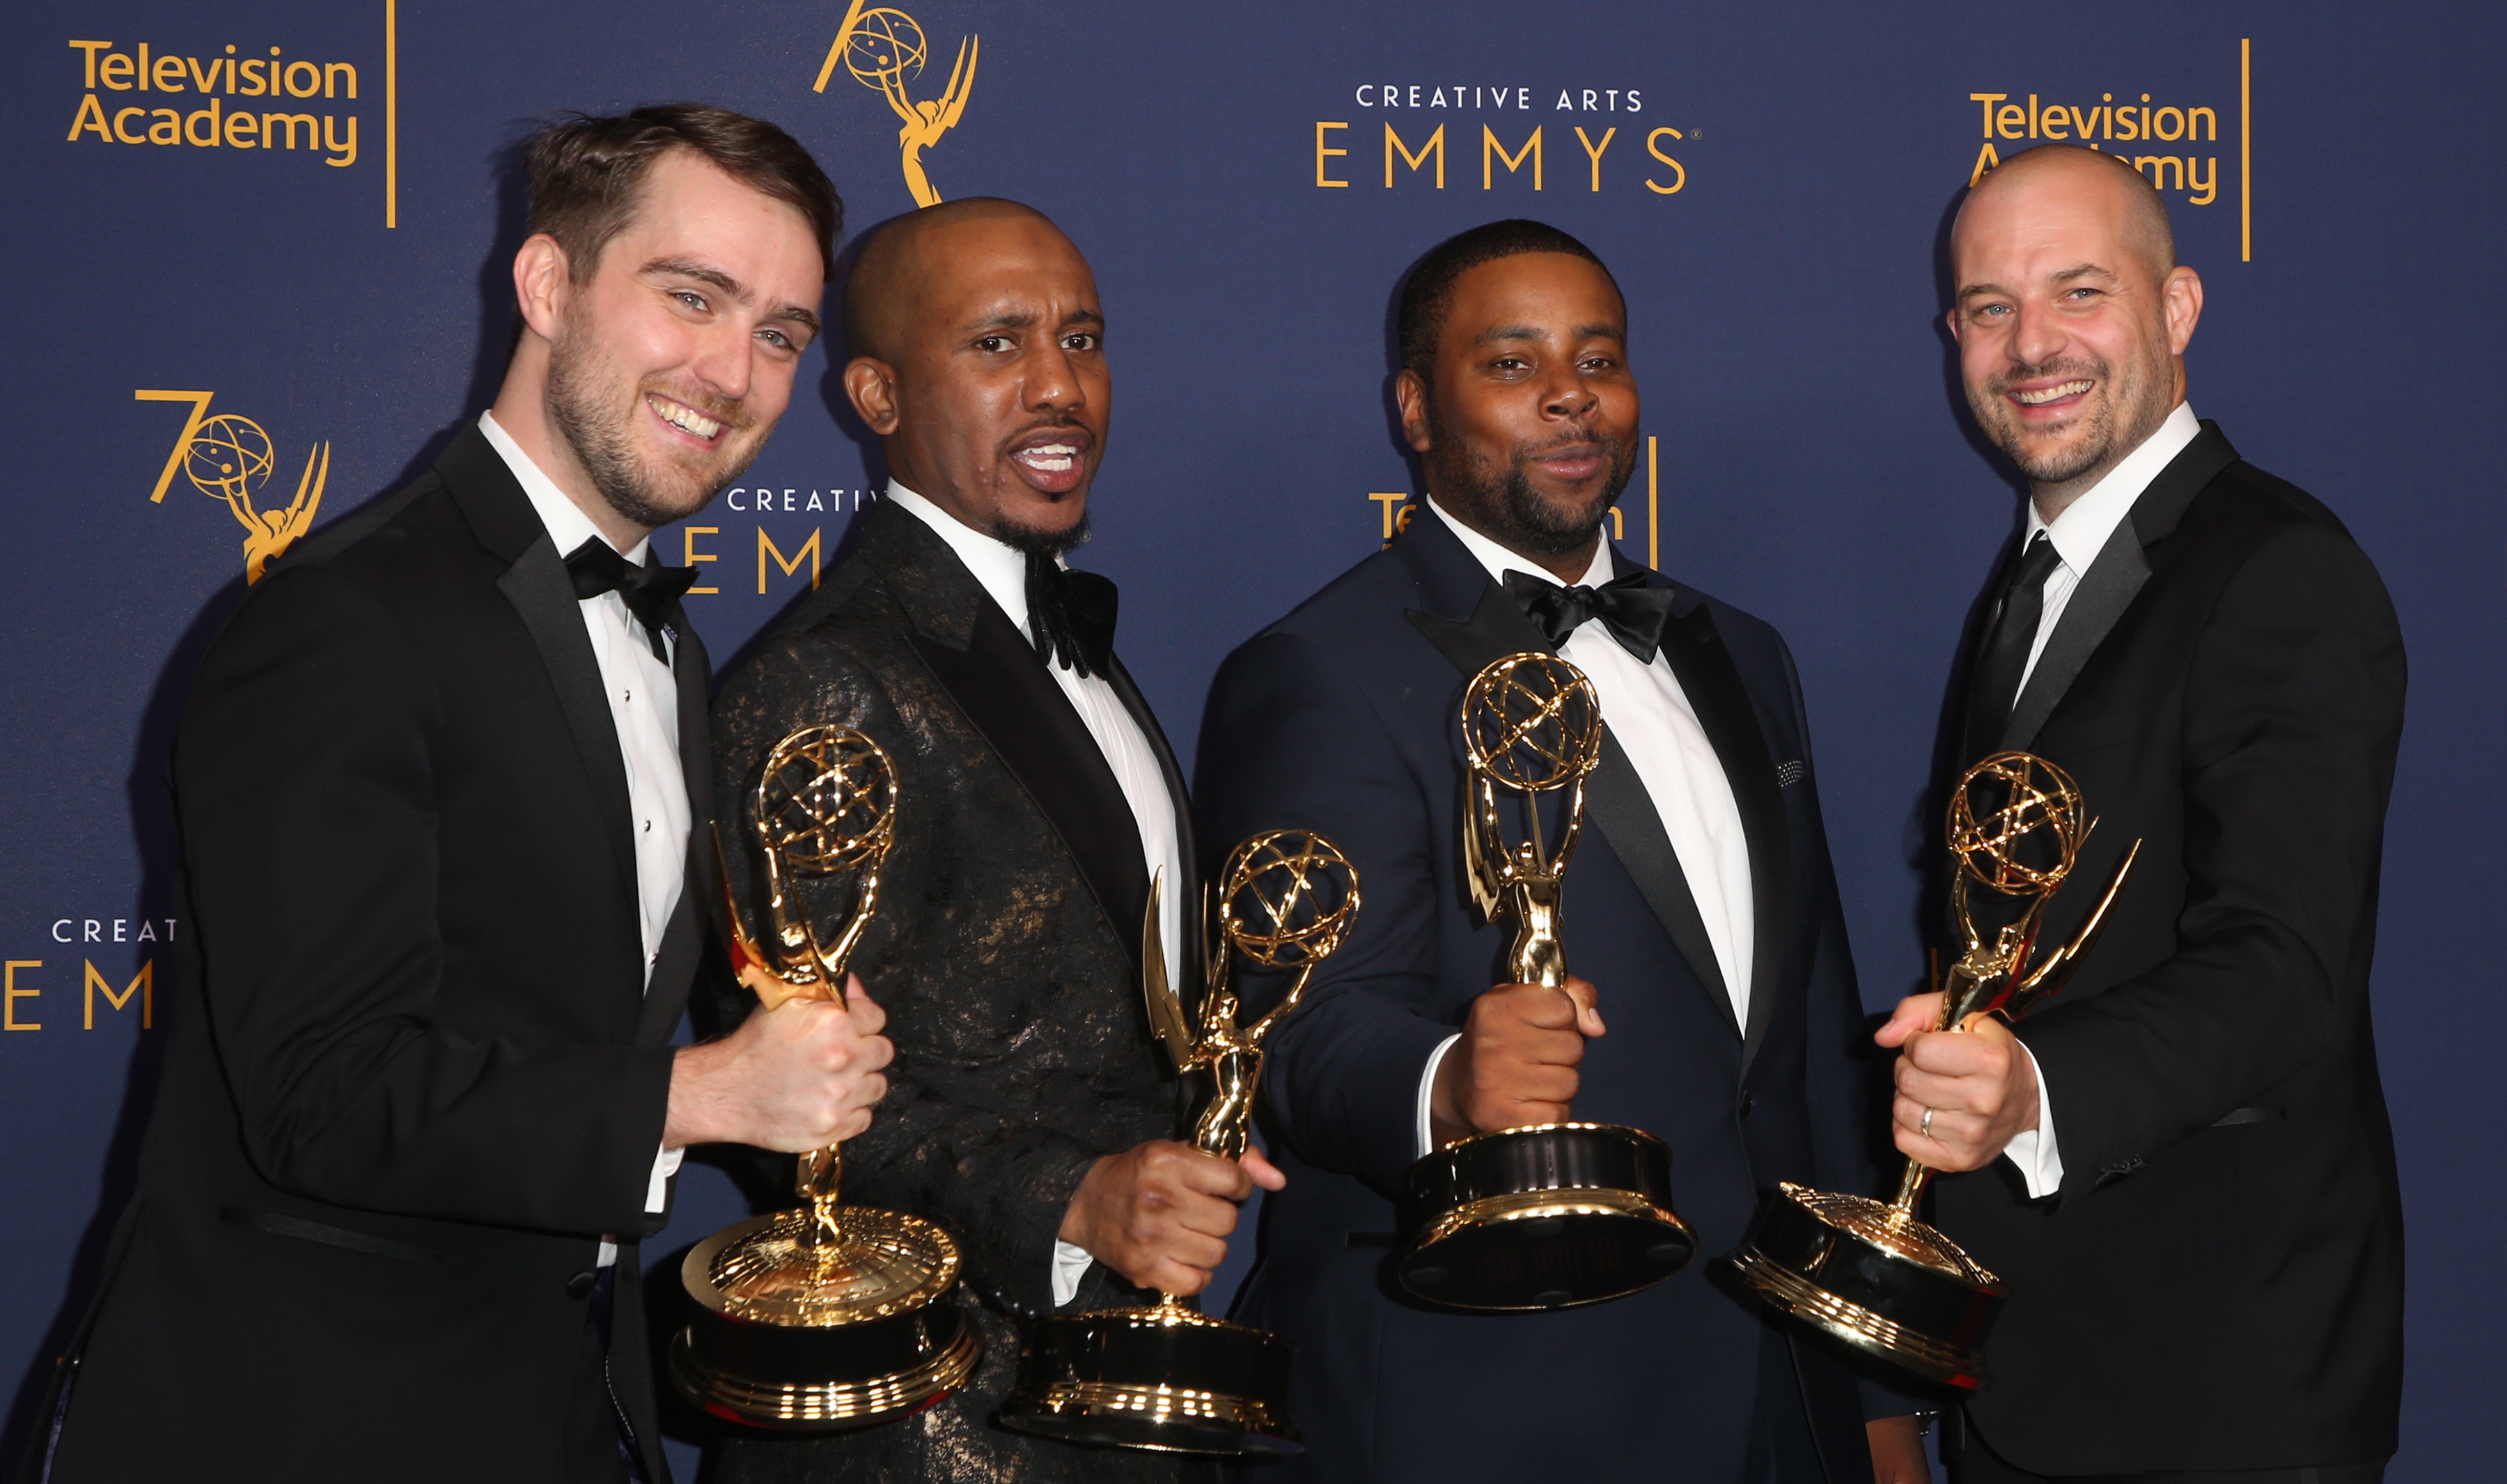 Will Stephen, Chris Redd, Kenan Thompson, and Eli Brueggemann at the 2018 Creative Arts Emmy Awards in Los Angeles, California. (When: Sept. 10 2018. Credit: FayesVision/WENN.com)